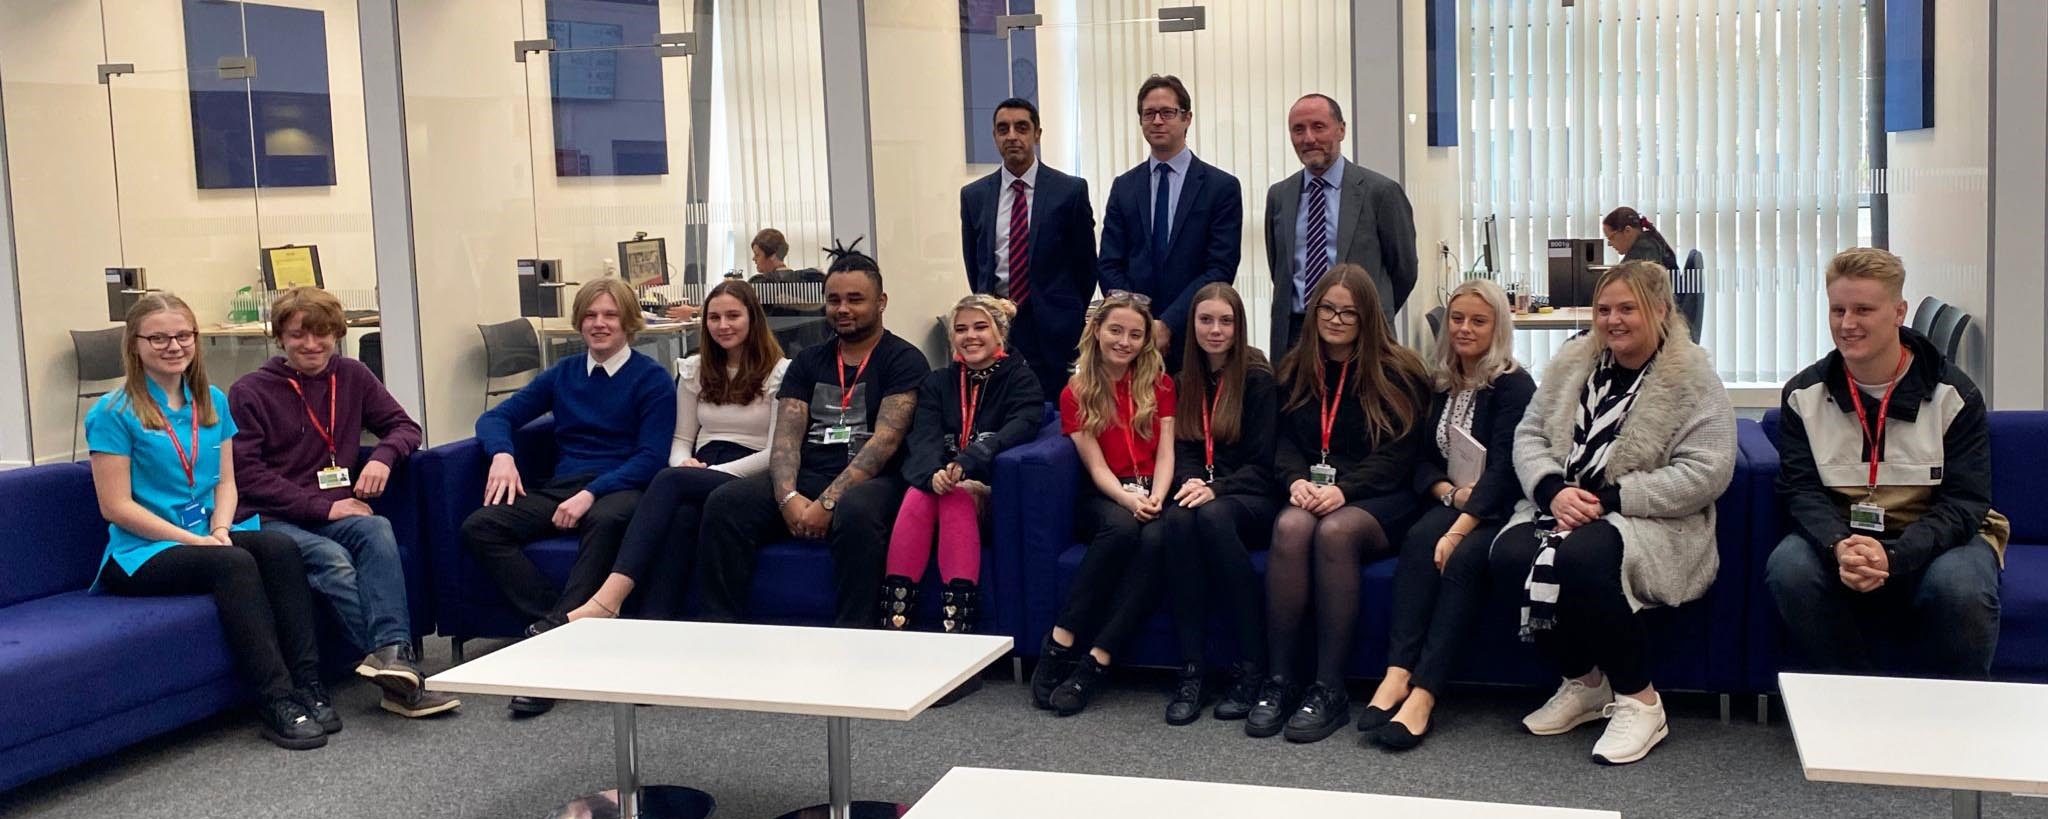 Alex Burghart skills minister with Walsall College students web